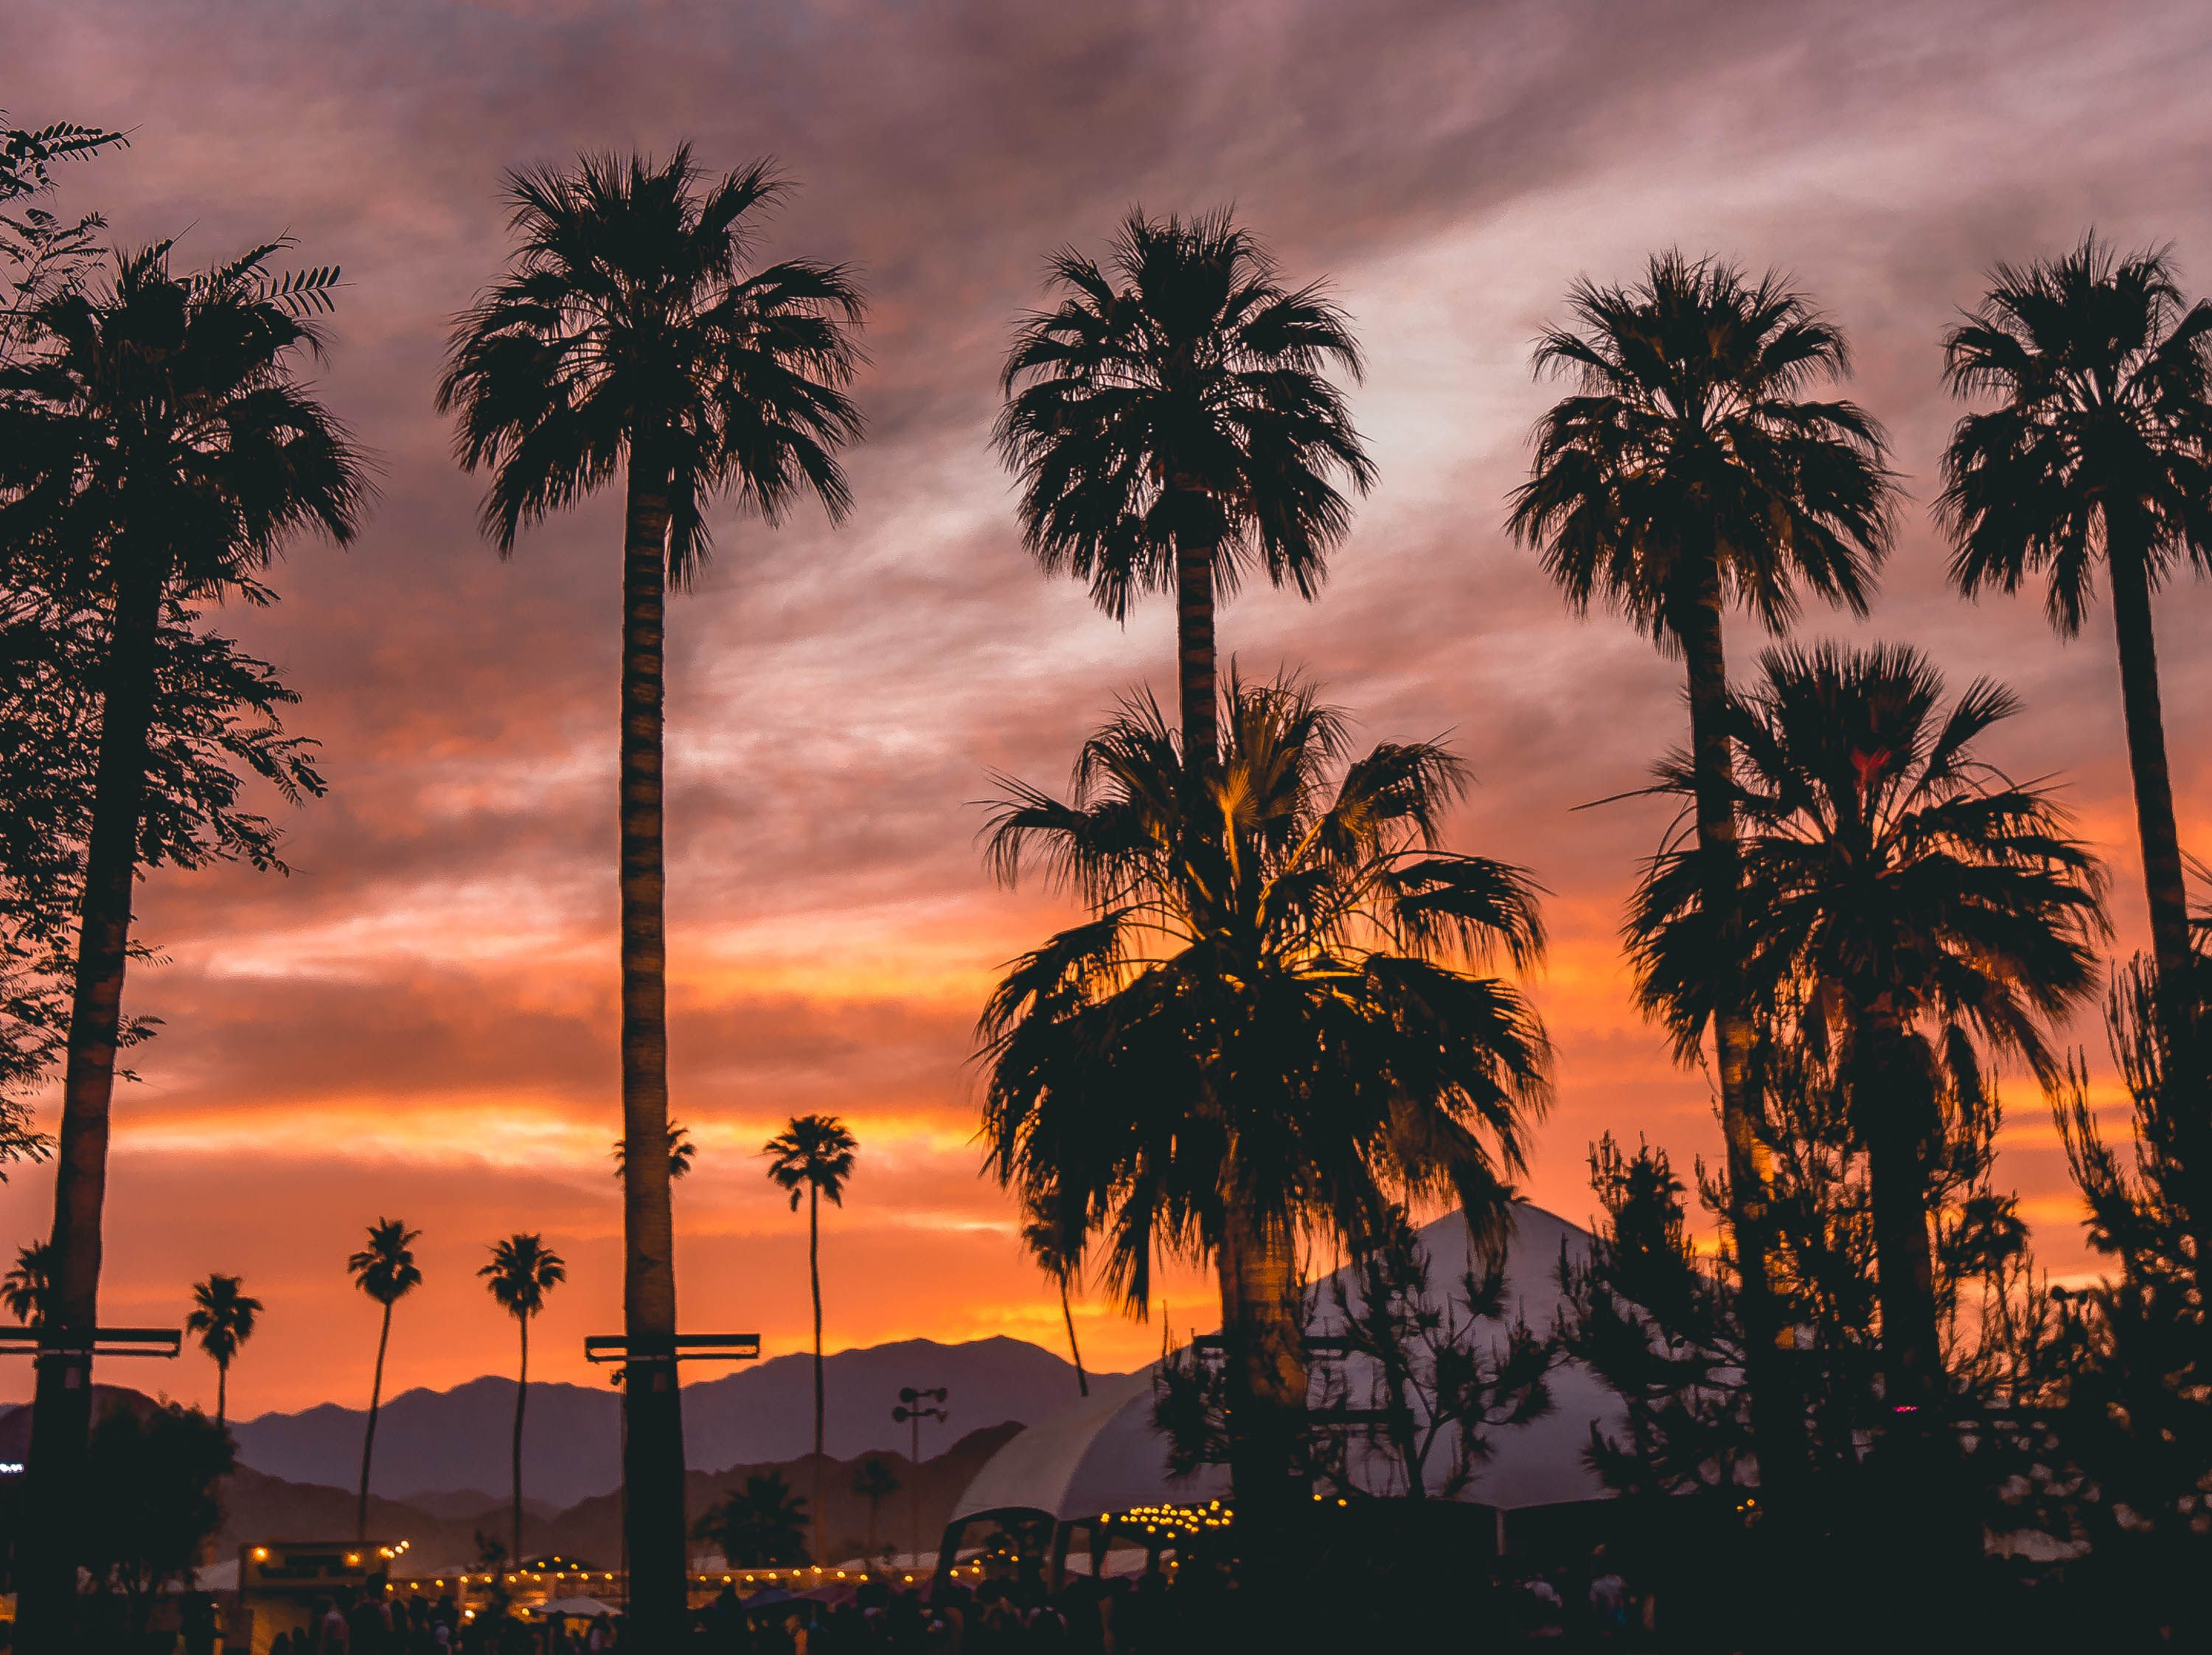 Indio - Glamping in Southern California 2020